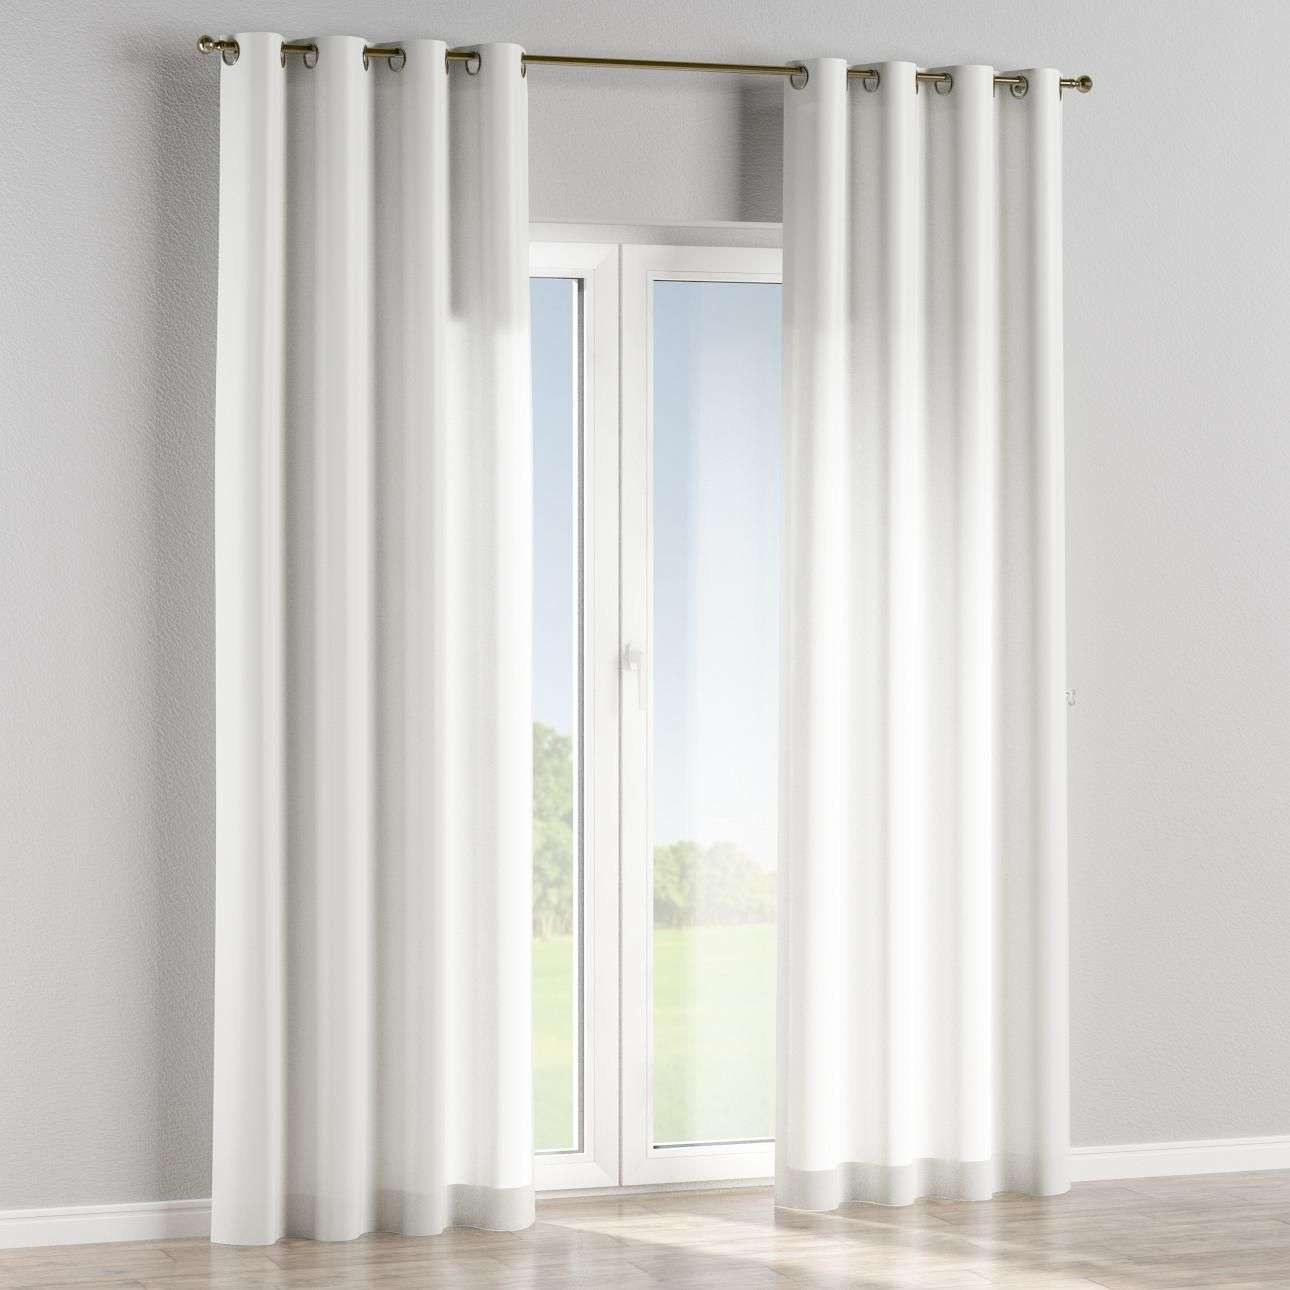 Eyelet lined curtains in collection Mirella, fabric: 142-06